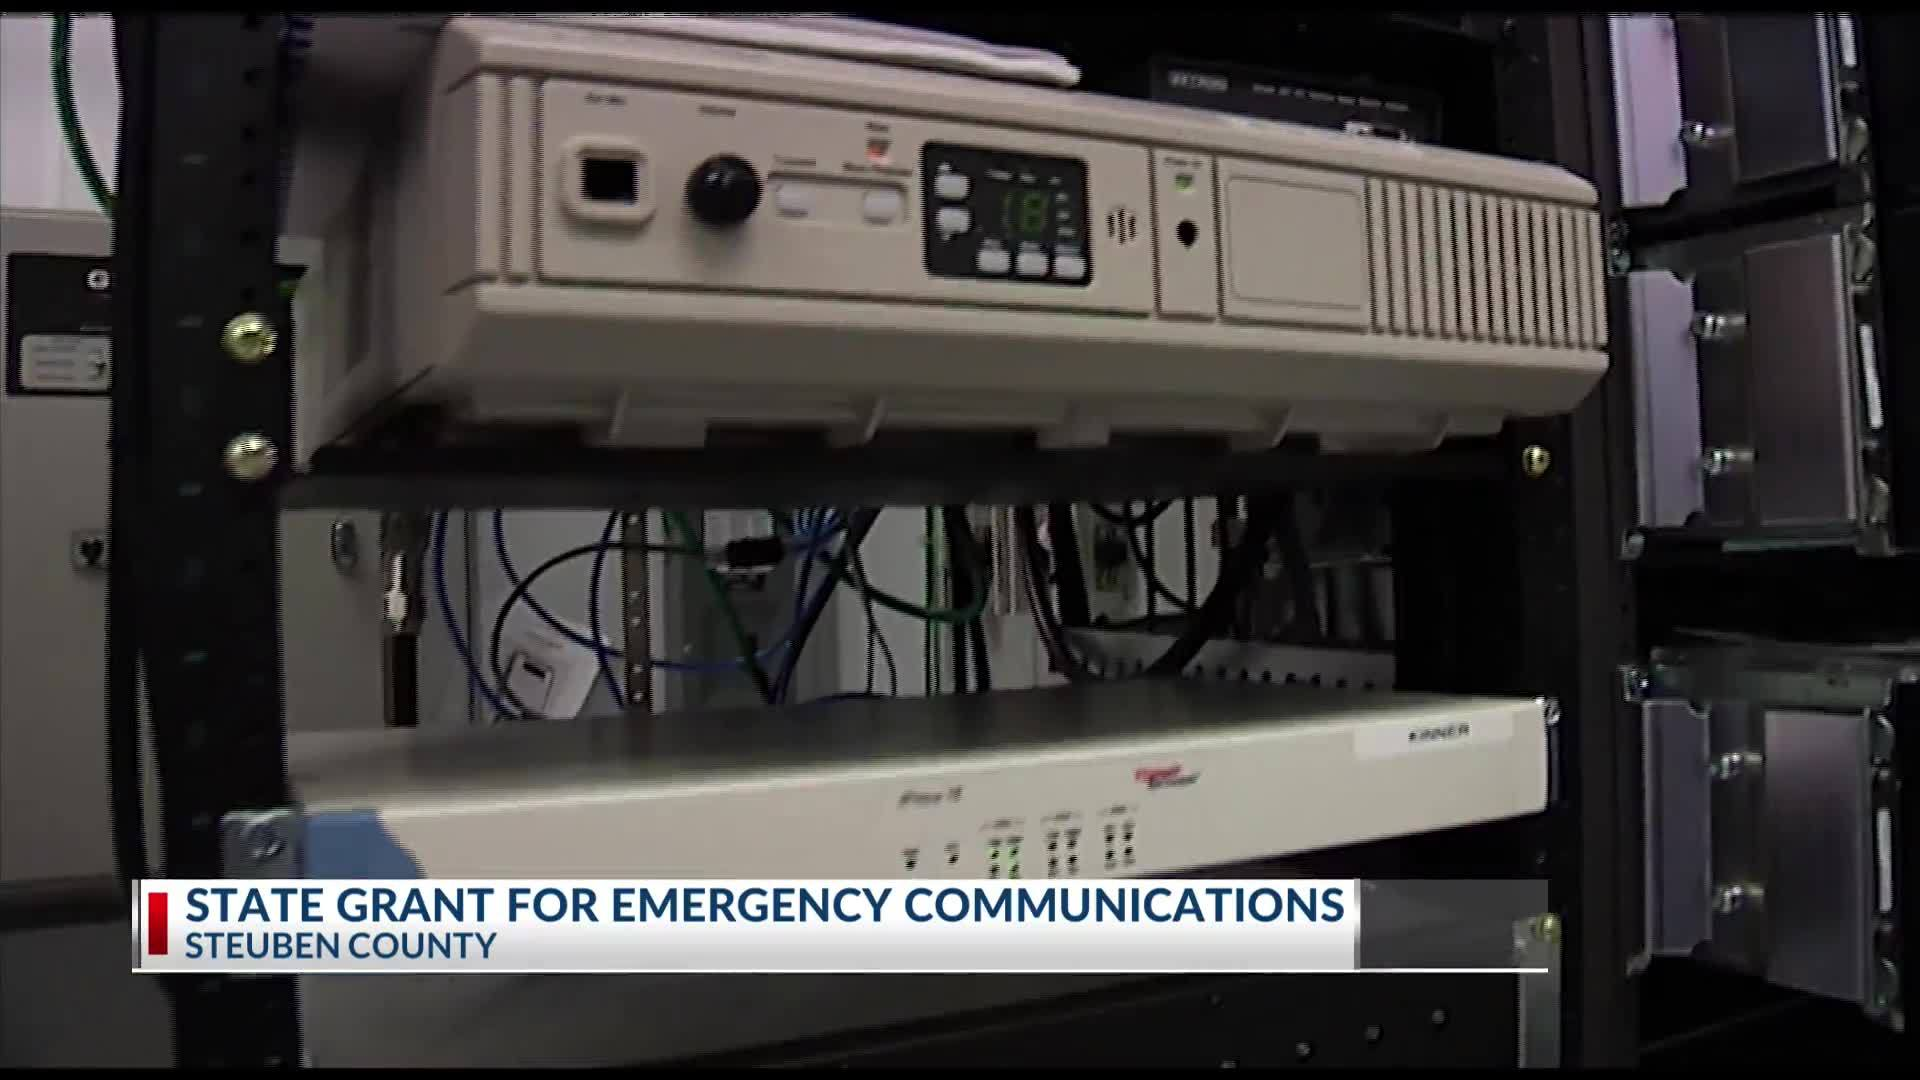 State_grant_for_emergency_communications_3_20190325221820